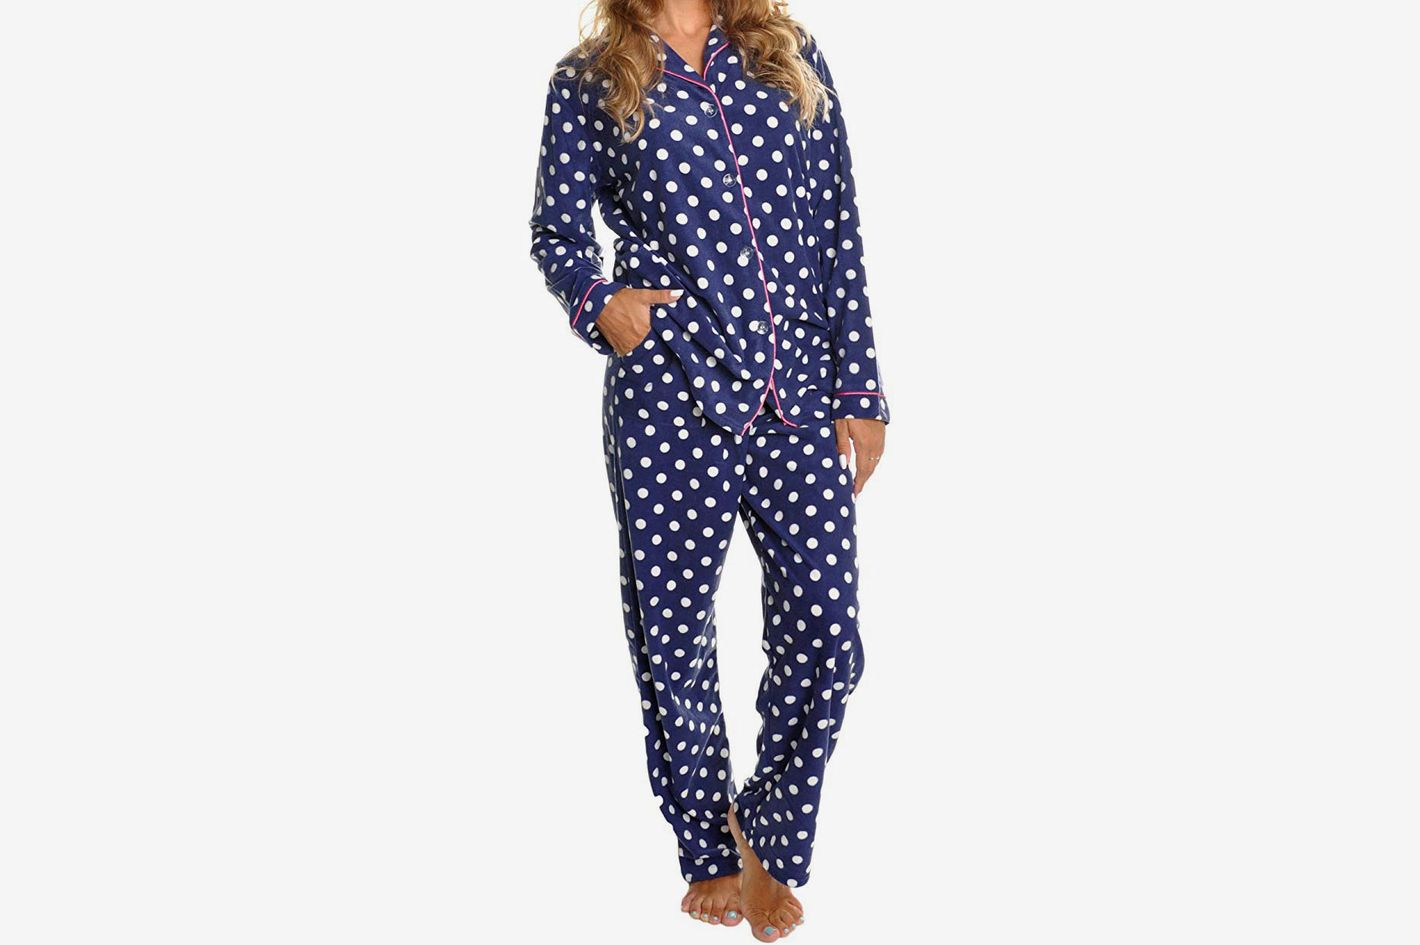 e115da40b7 21 Best Women s Pajamas Under  50 on Amazon  2018